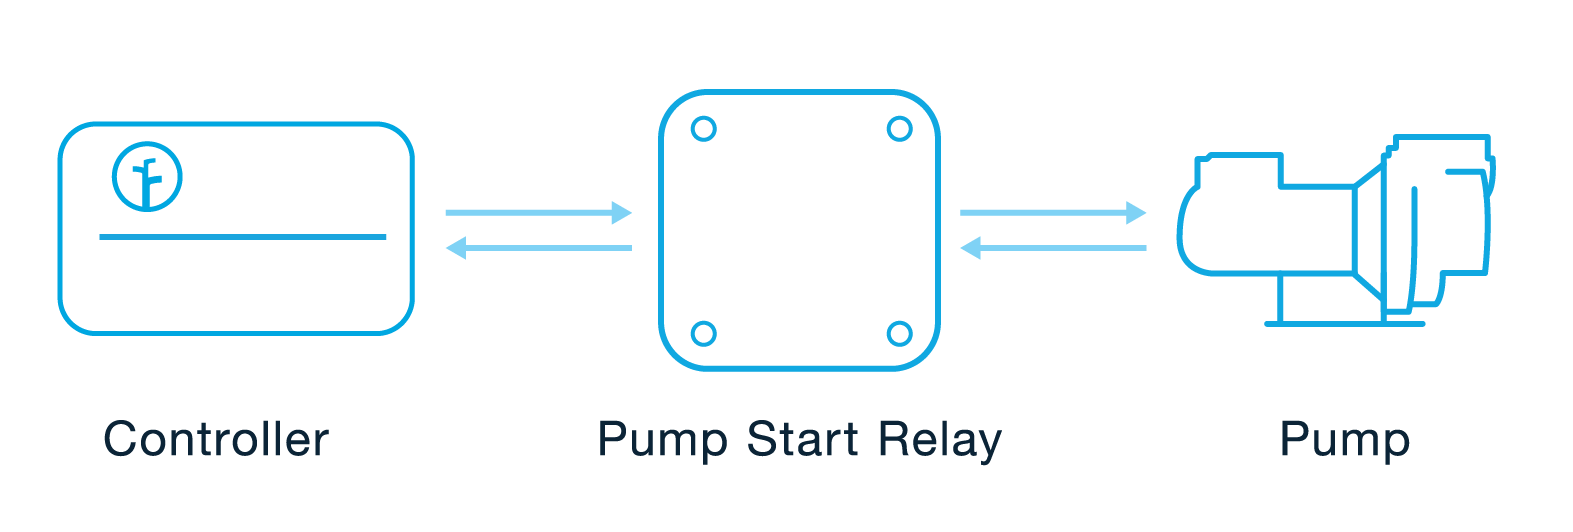 hight resolution of since the rachio 3 controller outputs 24vac a pump start relay is required when using a pump with the rachio 3